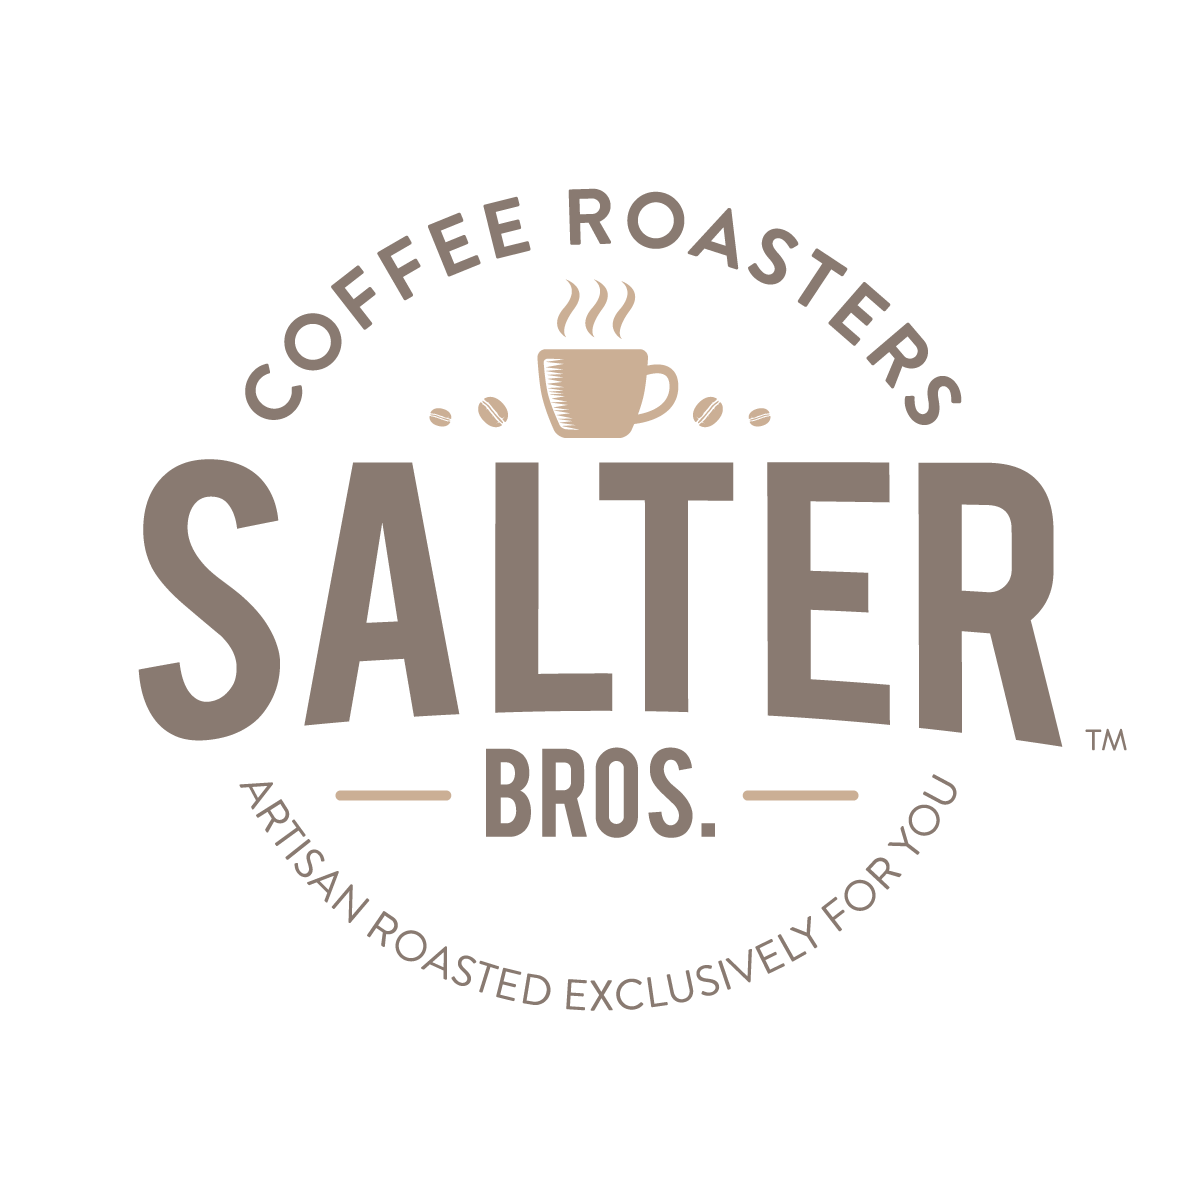 Salter Bros. Coffee Roasters